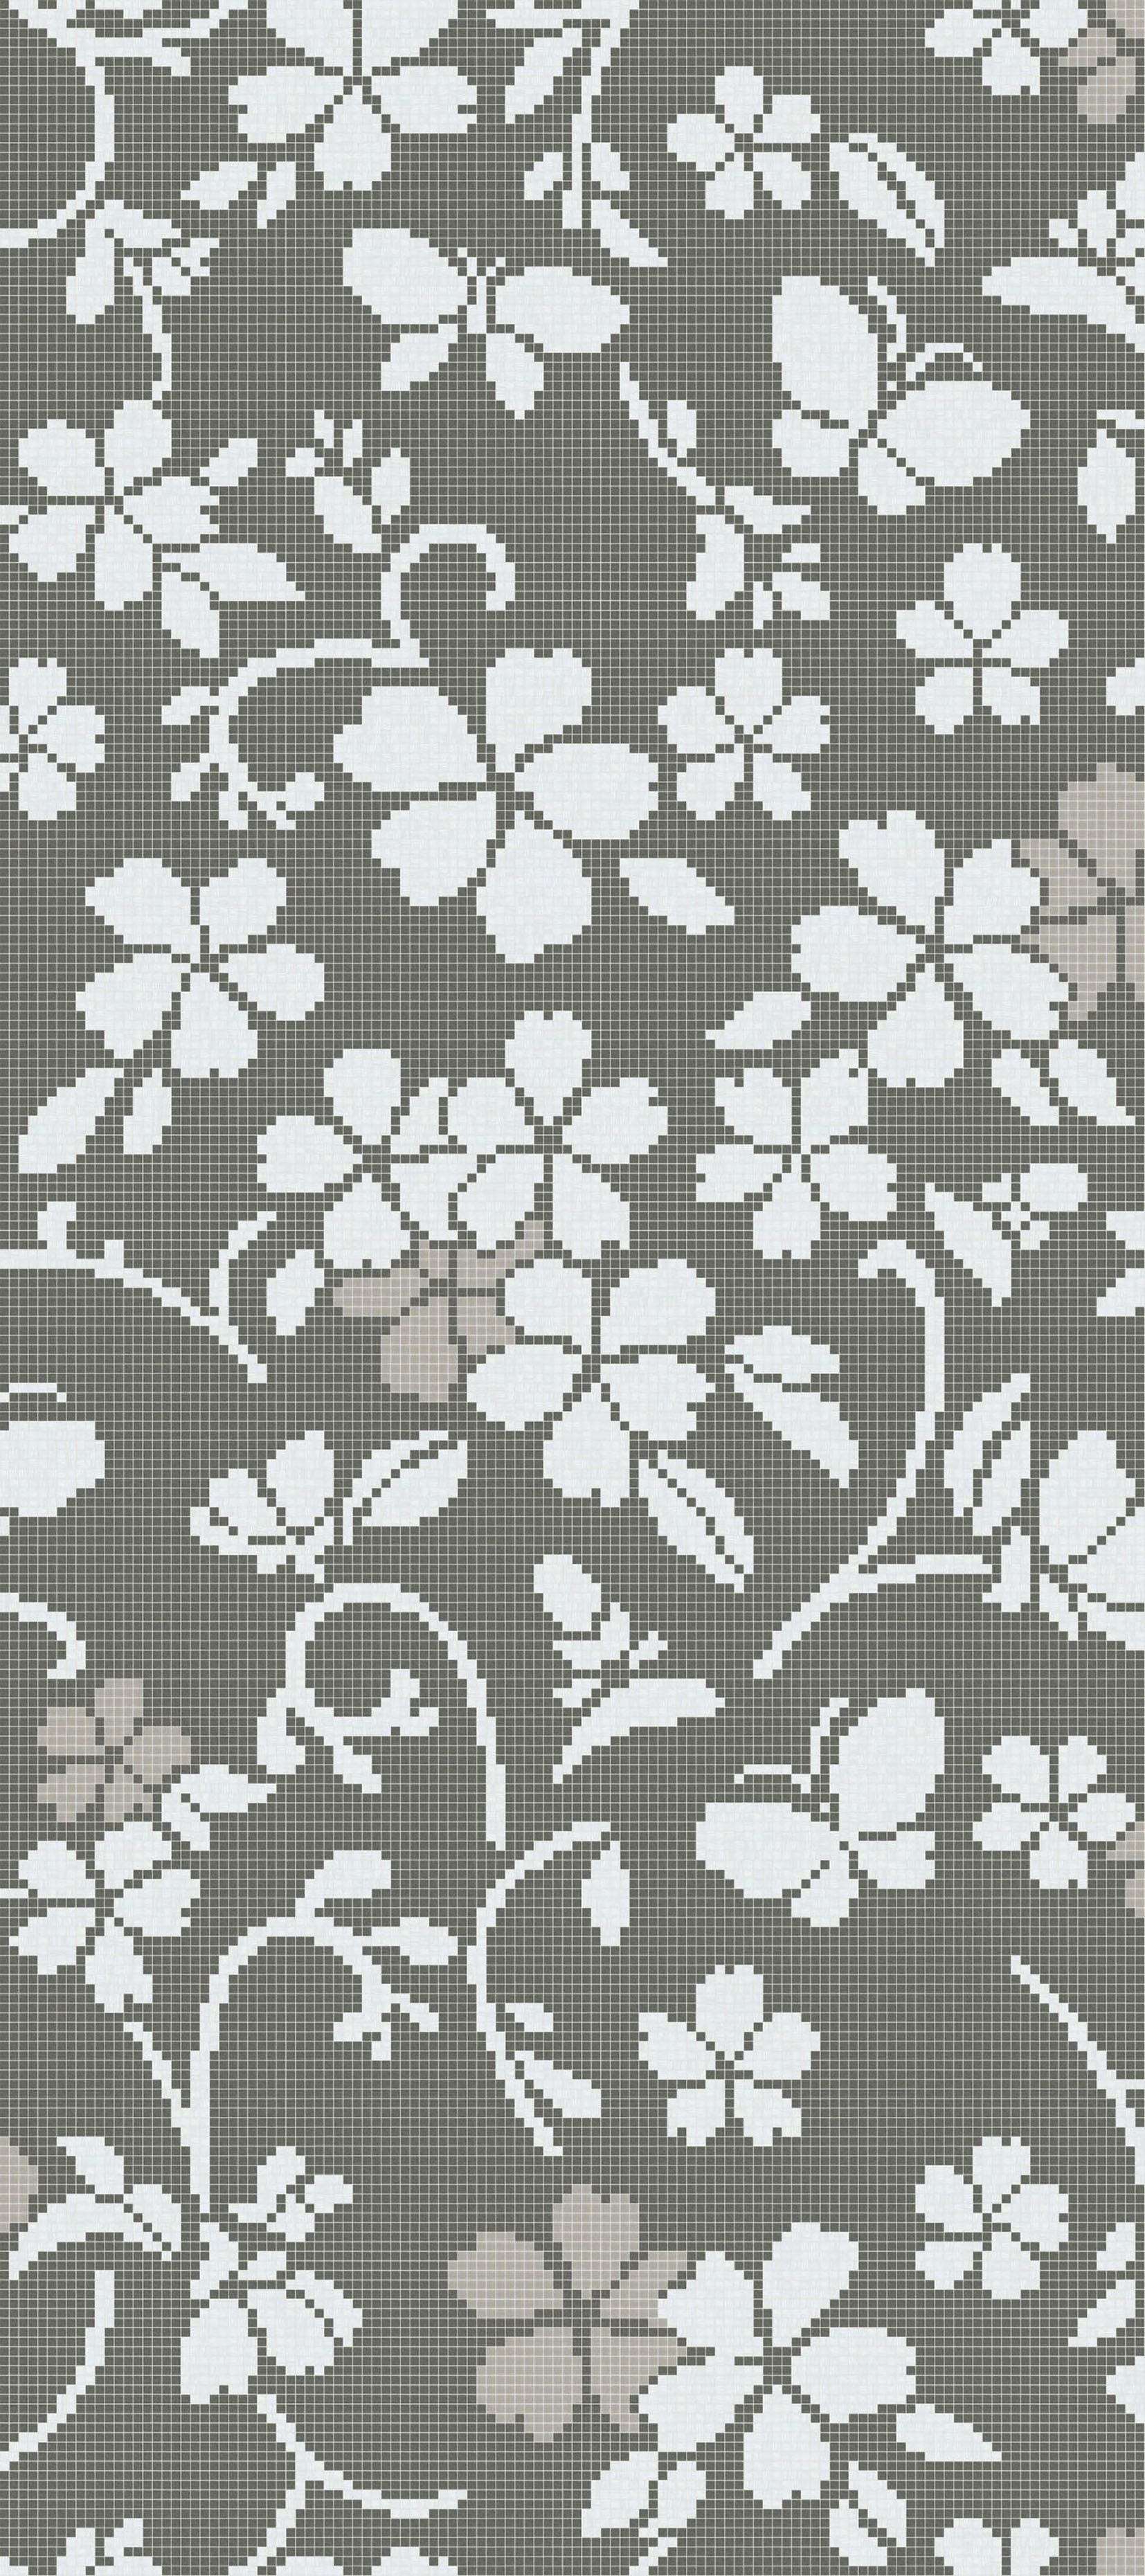 Hana-Flower Grey A, pattern in Bisazza glass mosaic, 10x10mm tiles ...